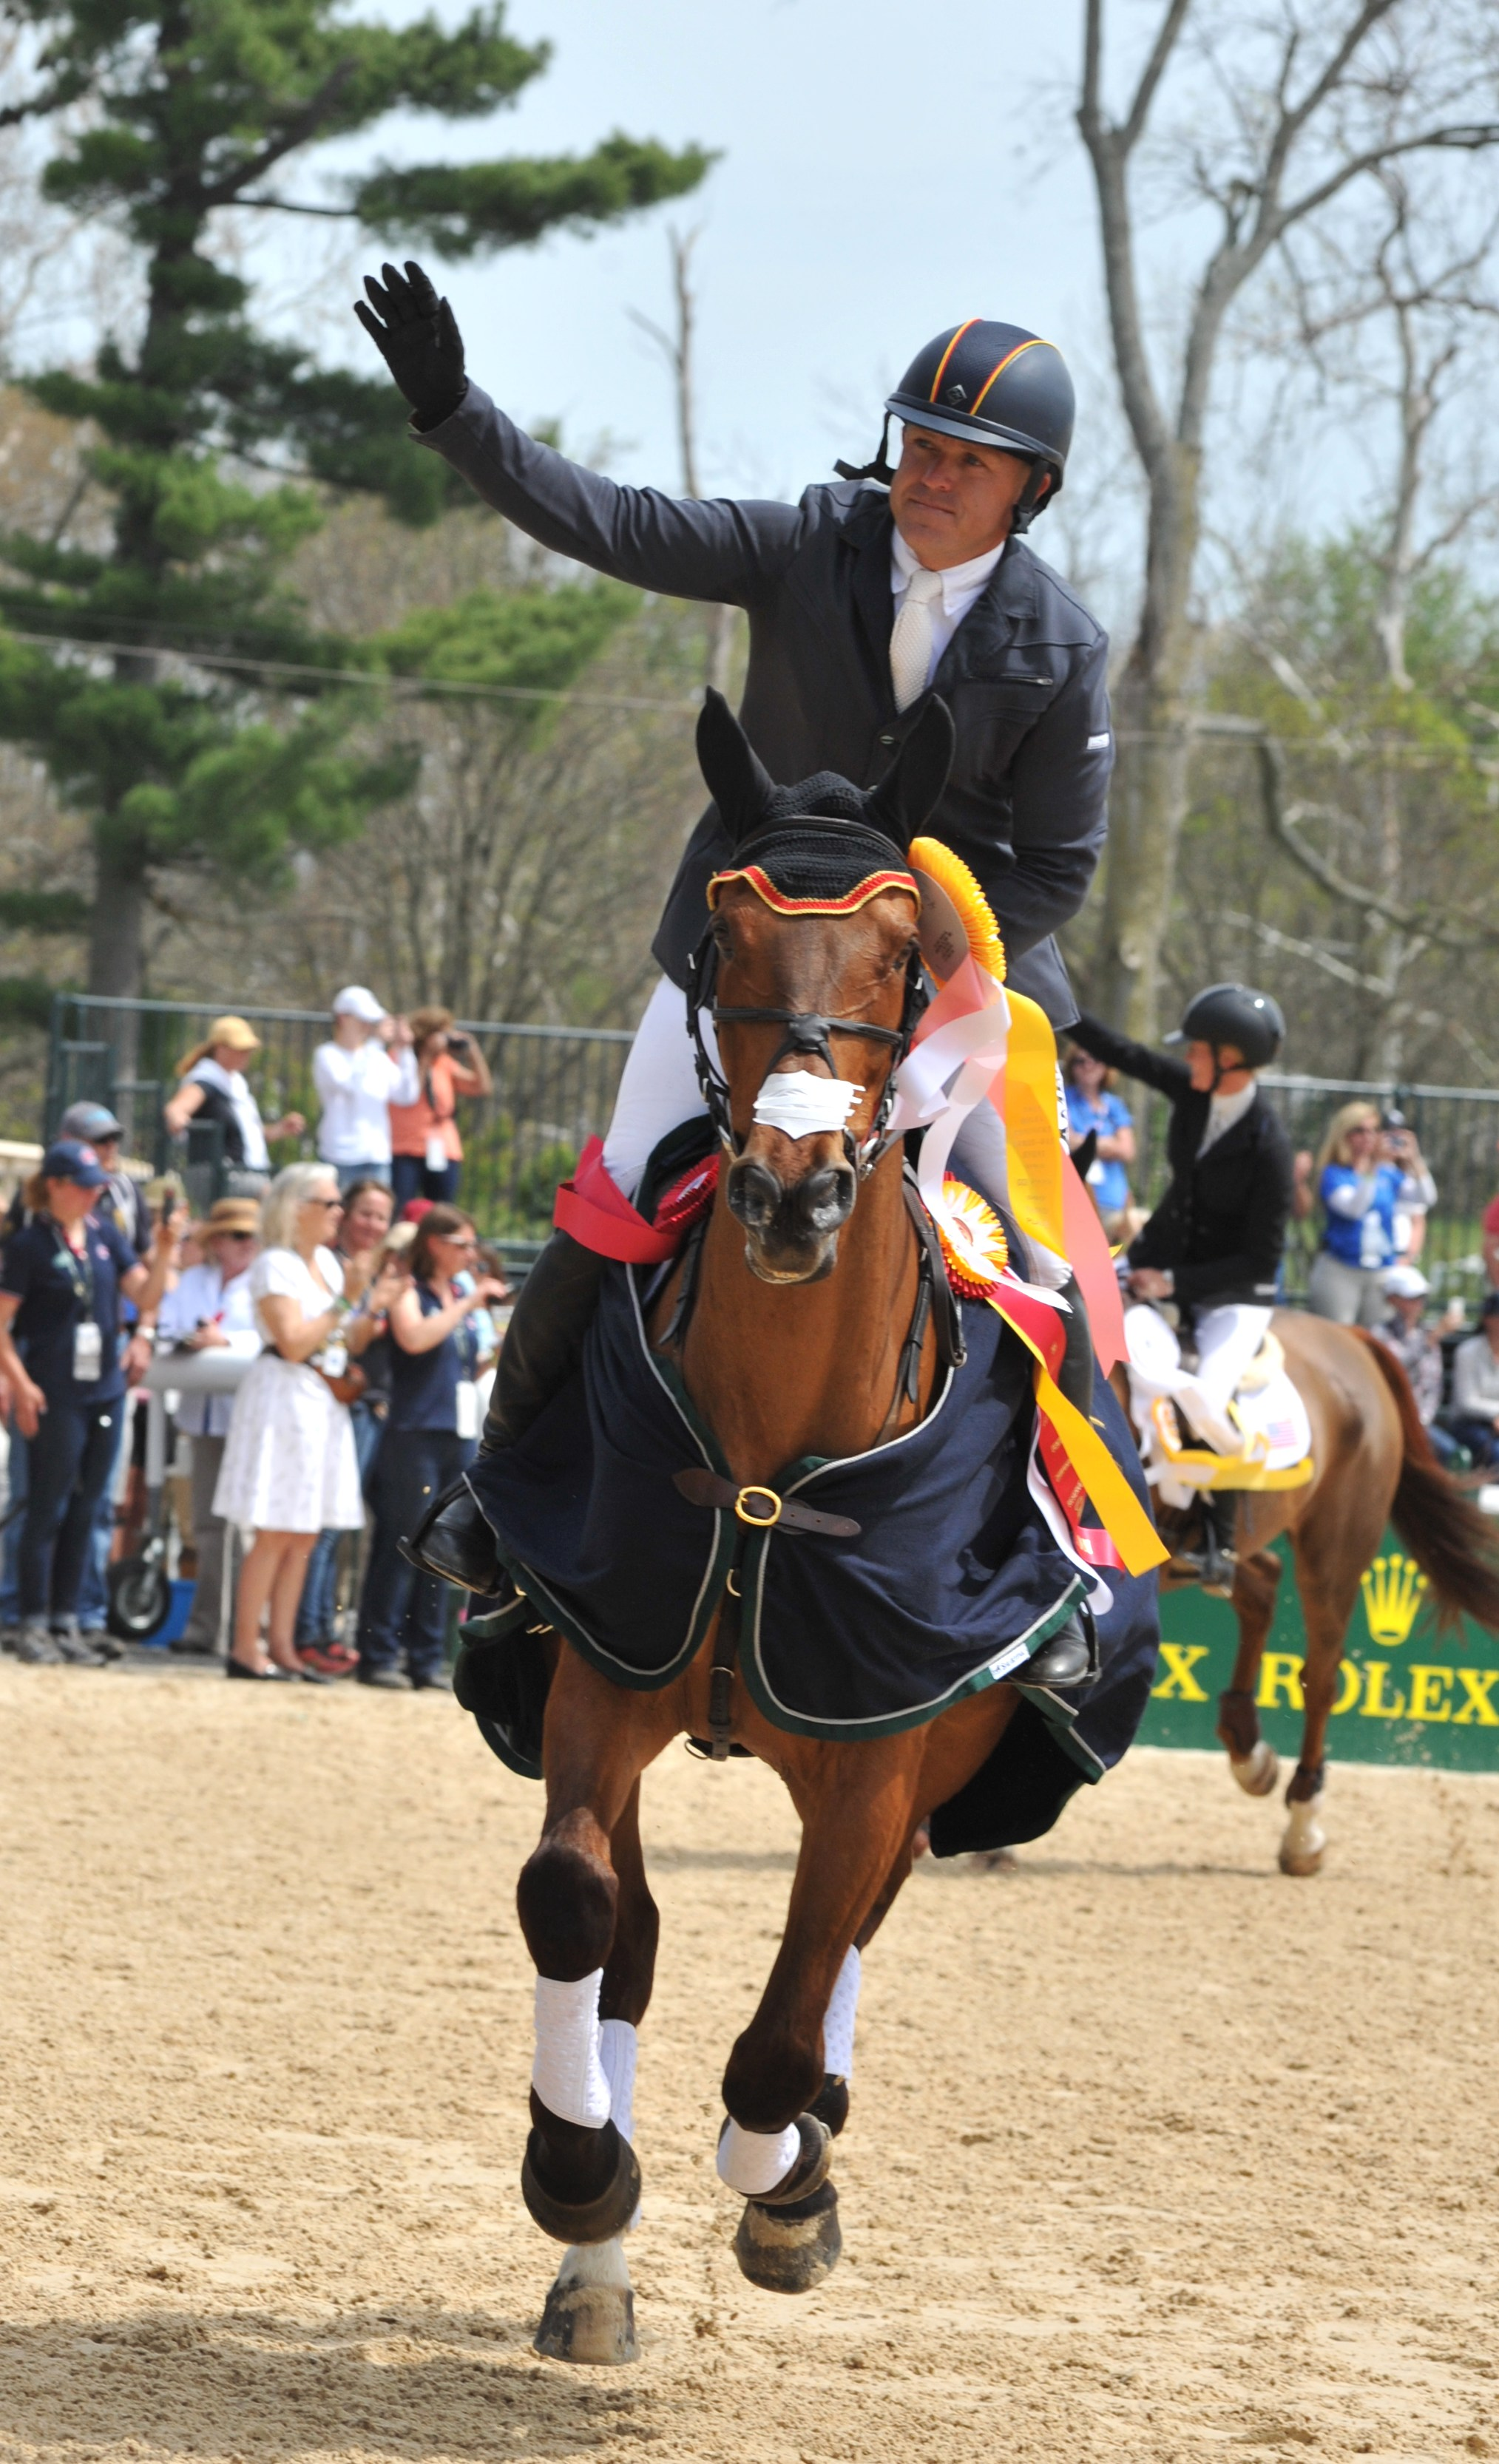 At the 2014 Rolex Kentucky Three-Day Event, Buck Davidson and Ballynoe Castle RM finished third overall and, as the second highest-placed American combination, earned the USEF National Four-Star reserve championship. (Photo by Lauren R. Giannini)